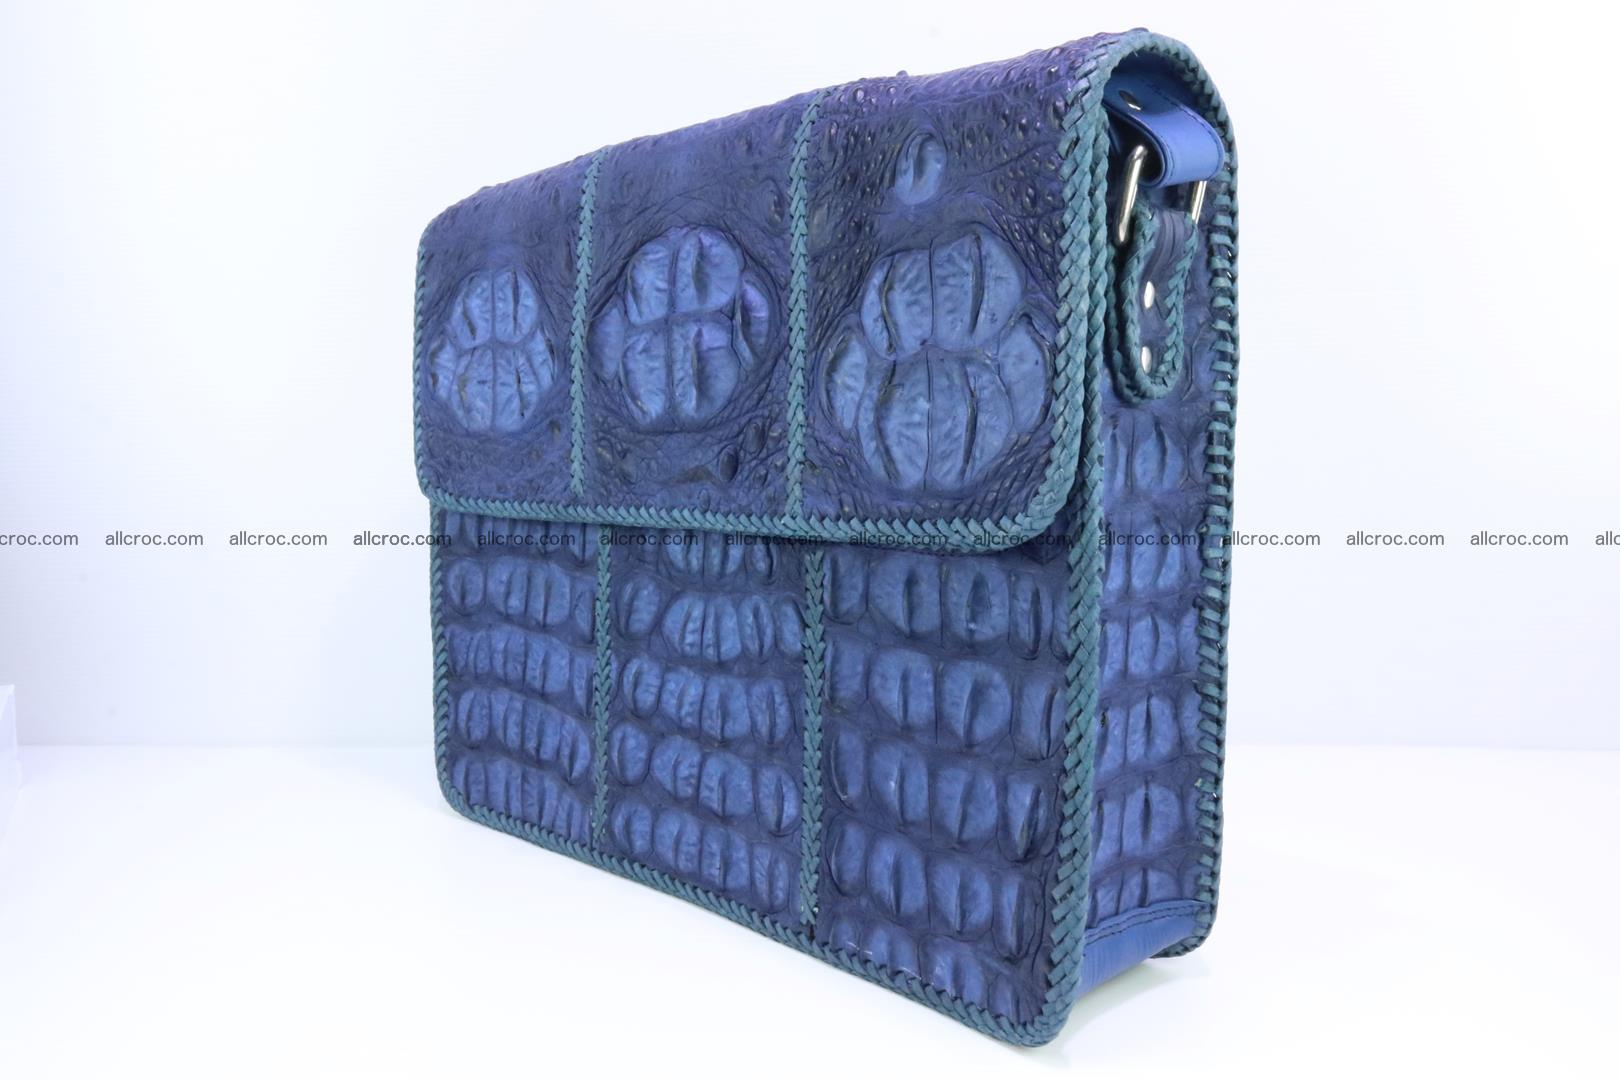 Crocodile skin shoulder bag with braided edges 144 Foto 3